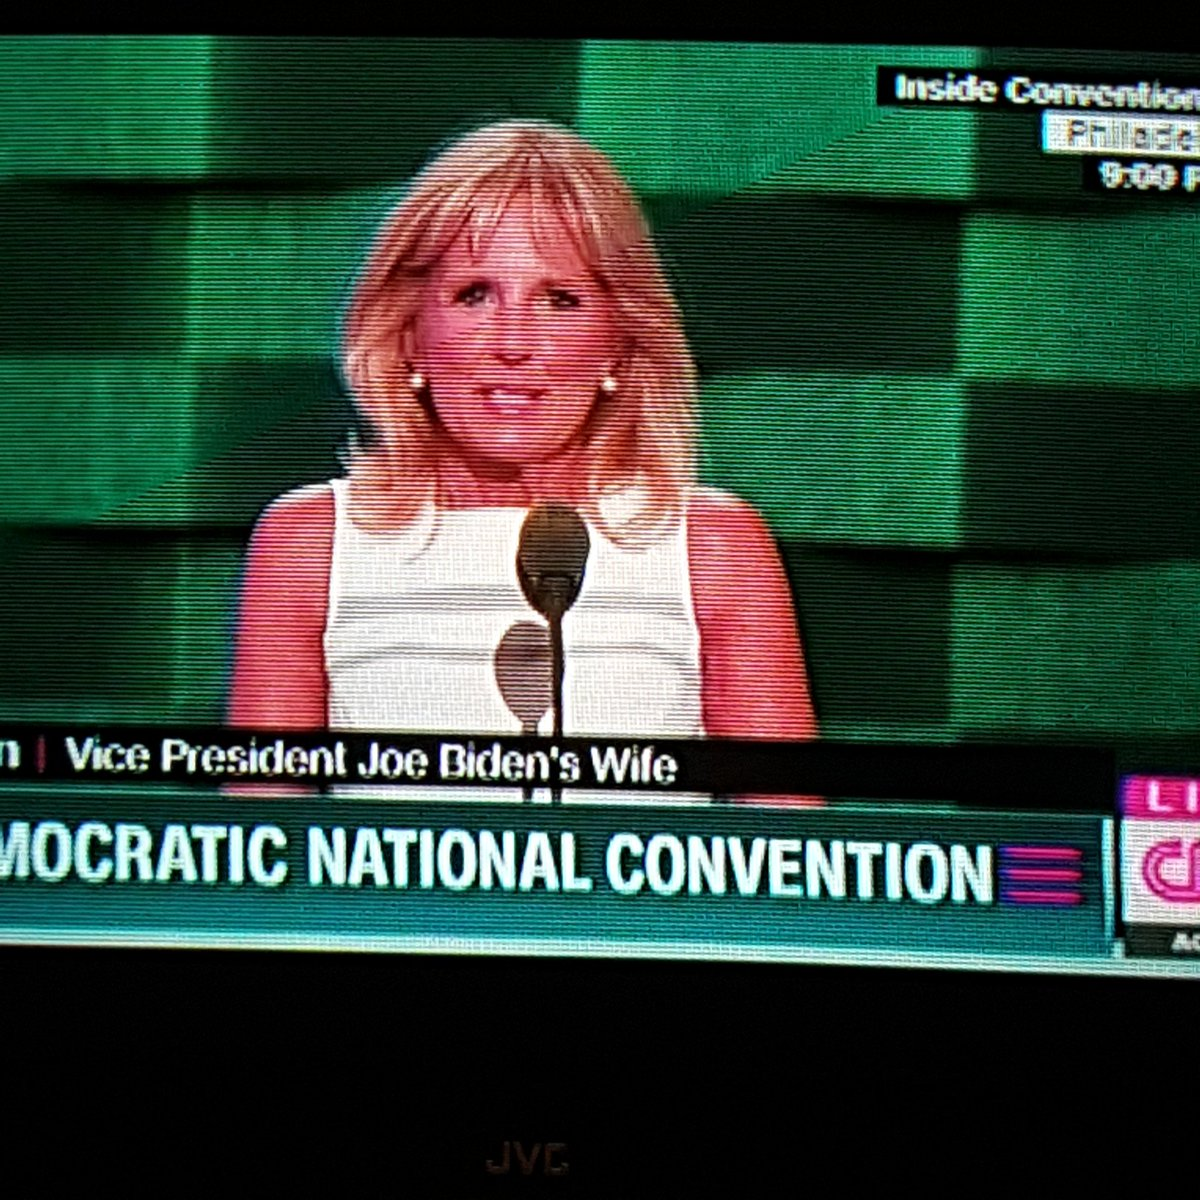 Two #BlueHens are now speaking at the #DNC -- Dr. Jill Biden & @VP Joe Biden #BlueHensforever https://t.co/HxbsQ3OpnY